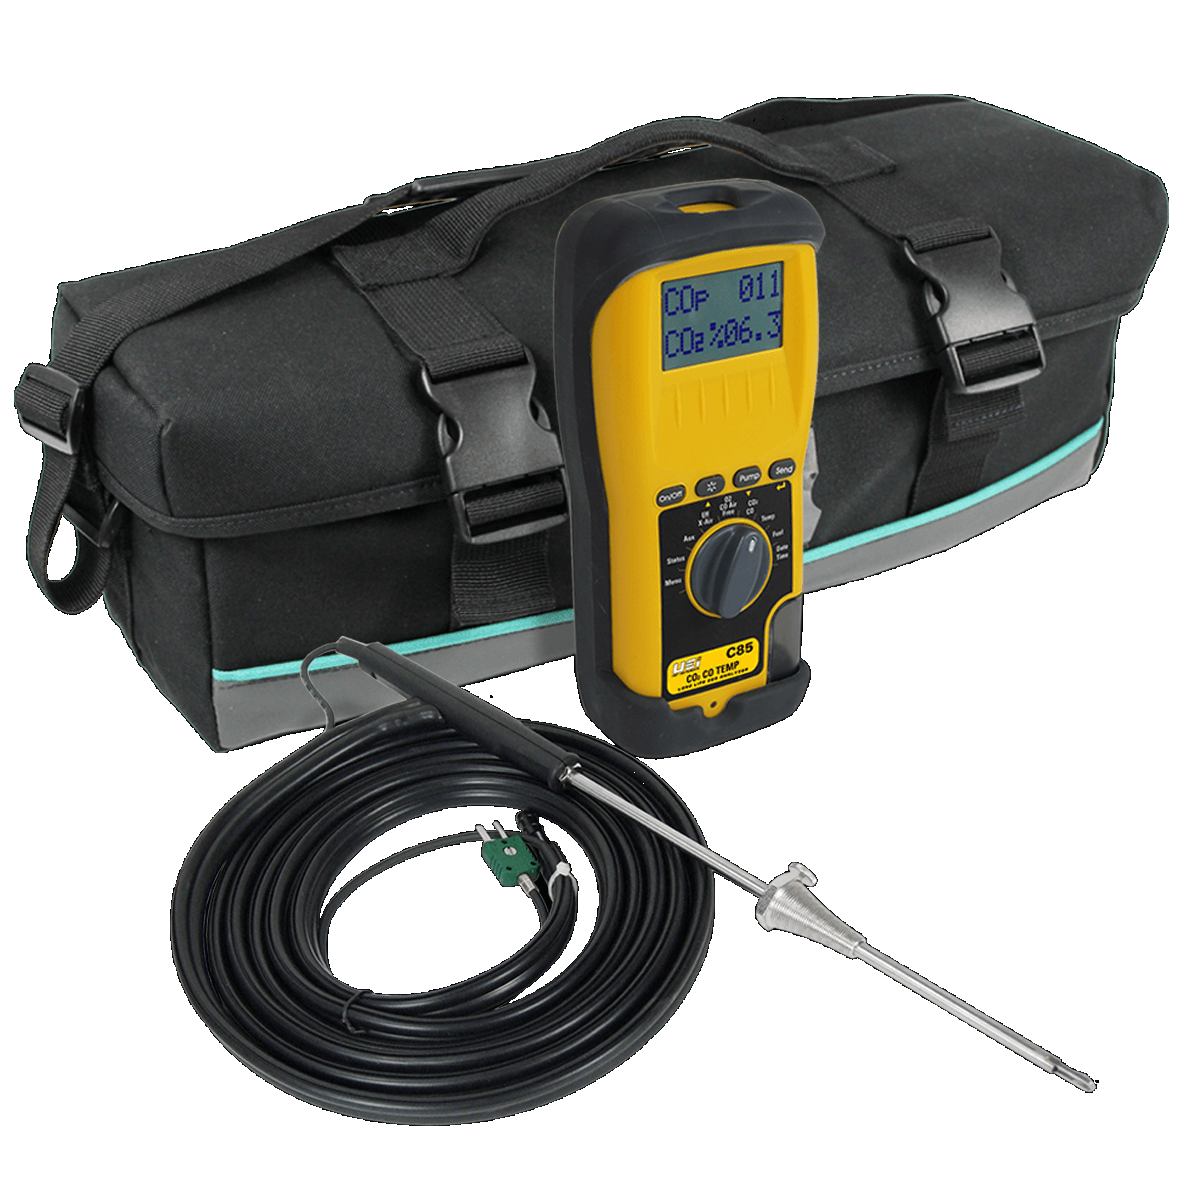 UEi C85 Kit Combustion Analyzer with Long Lasting EOS Technology